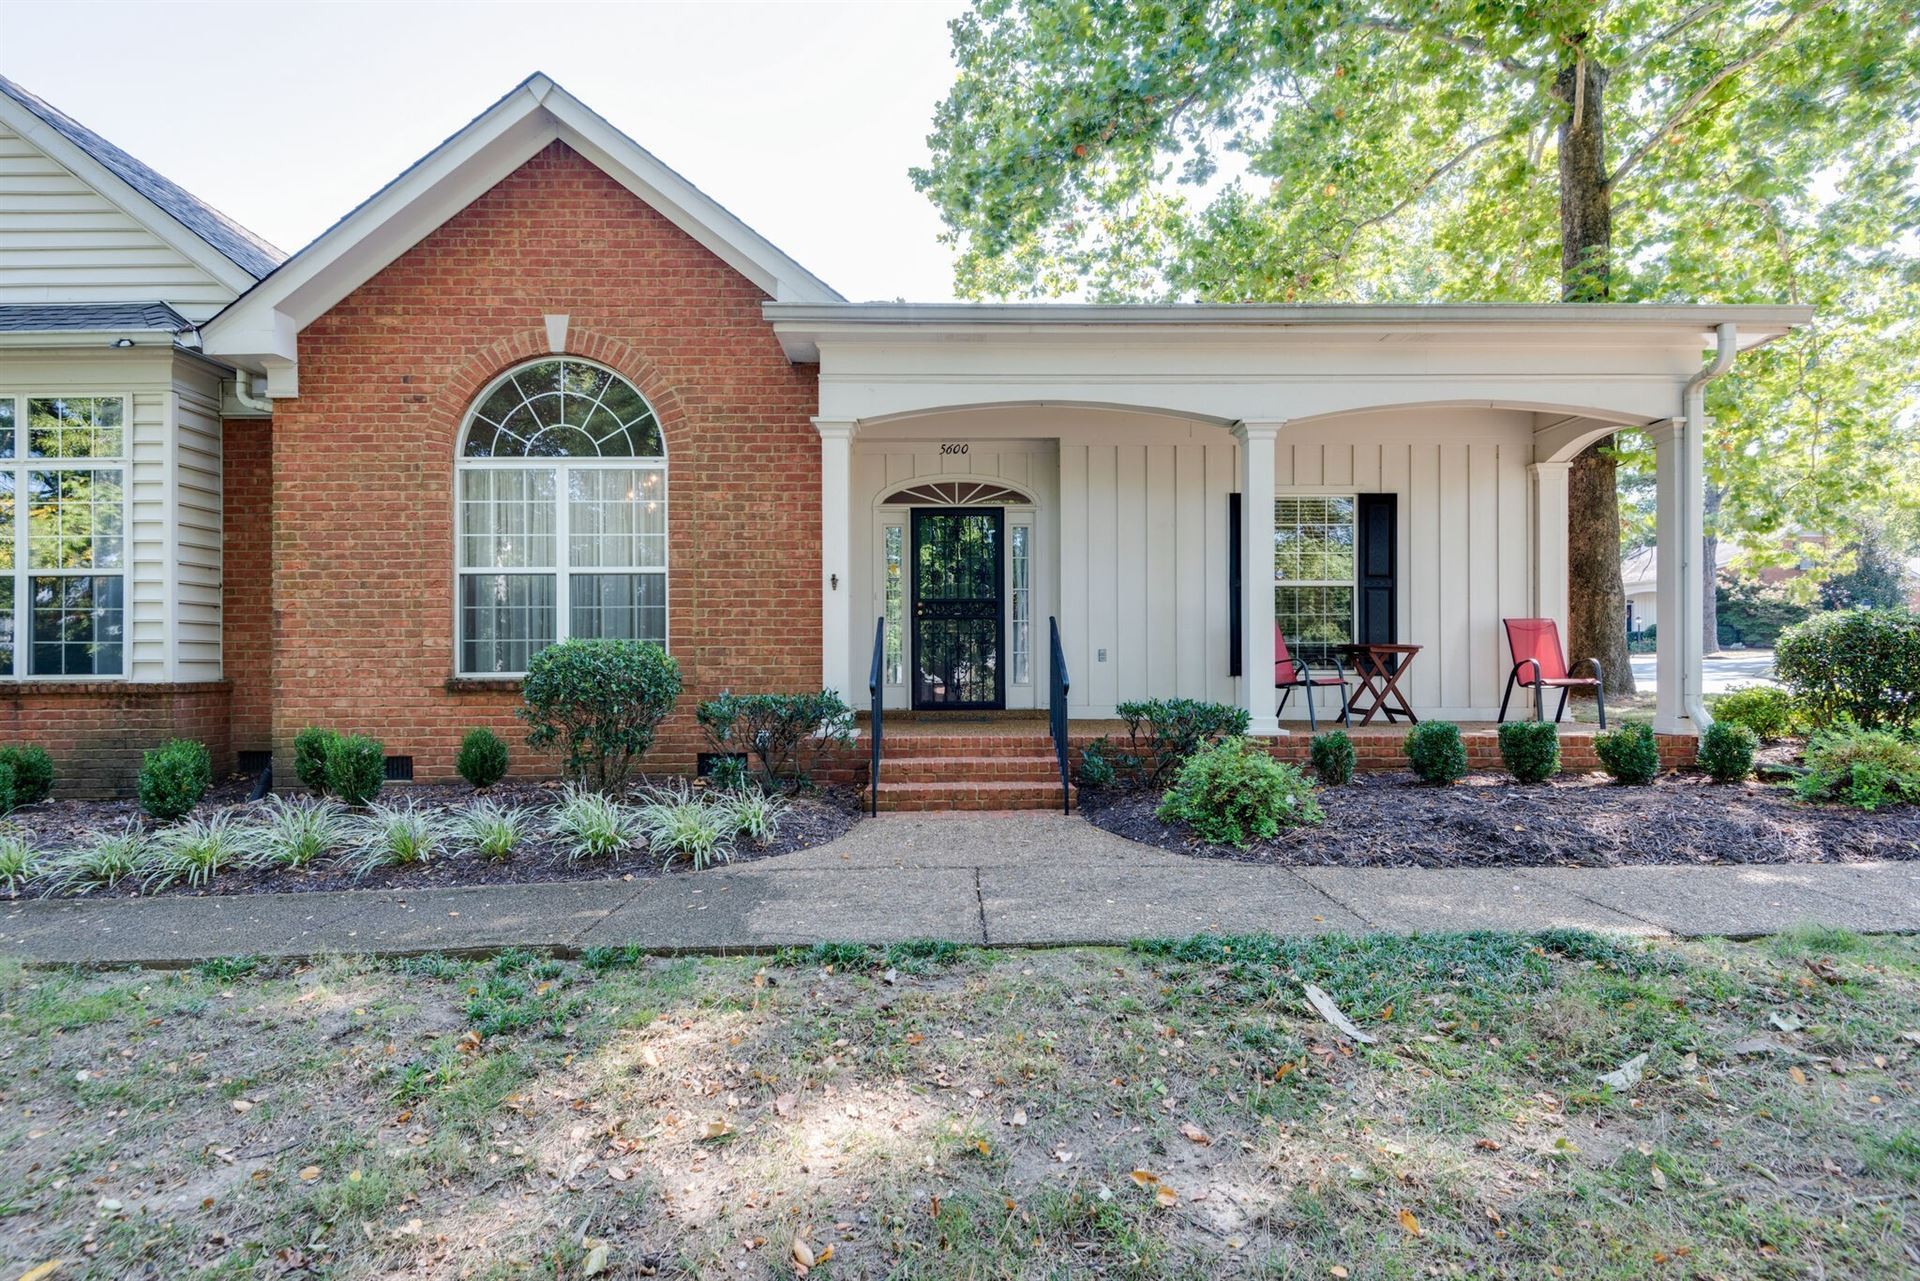 5600 Oakes Dr, Brentwood, TN 37027 - MLS#: 2220901